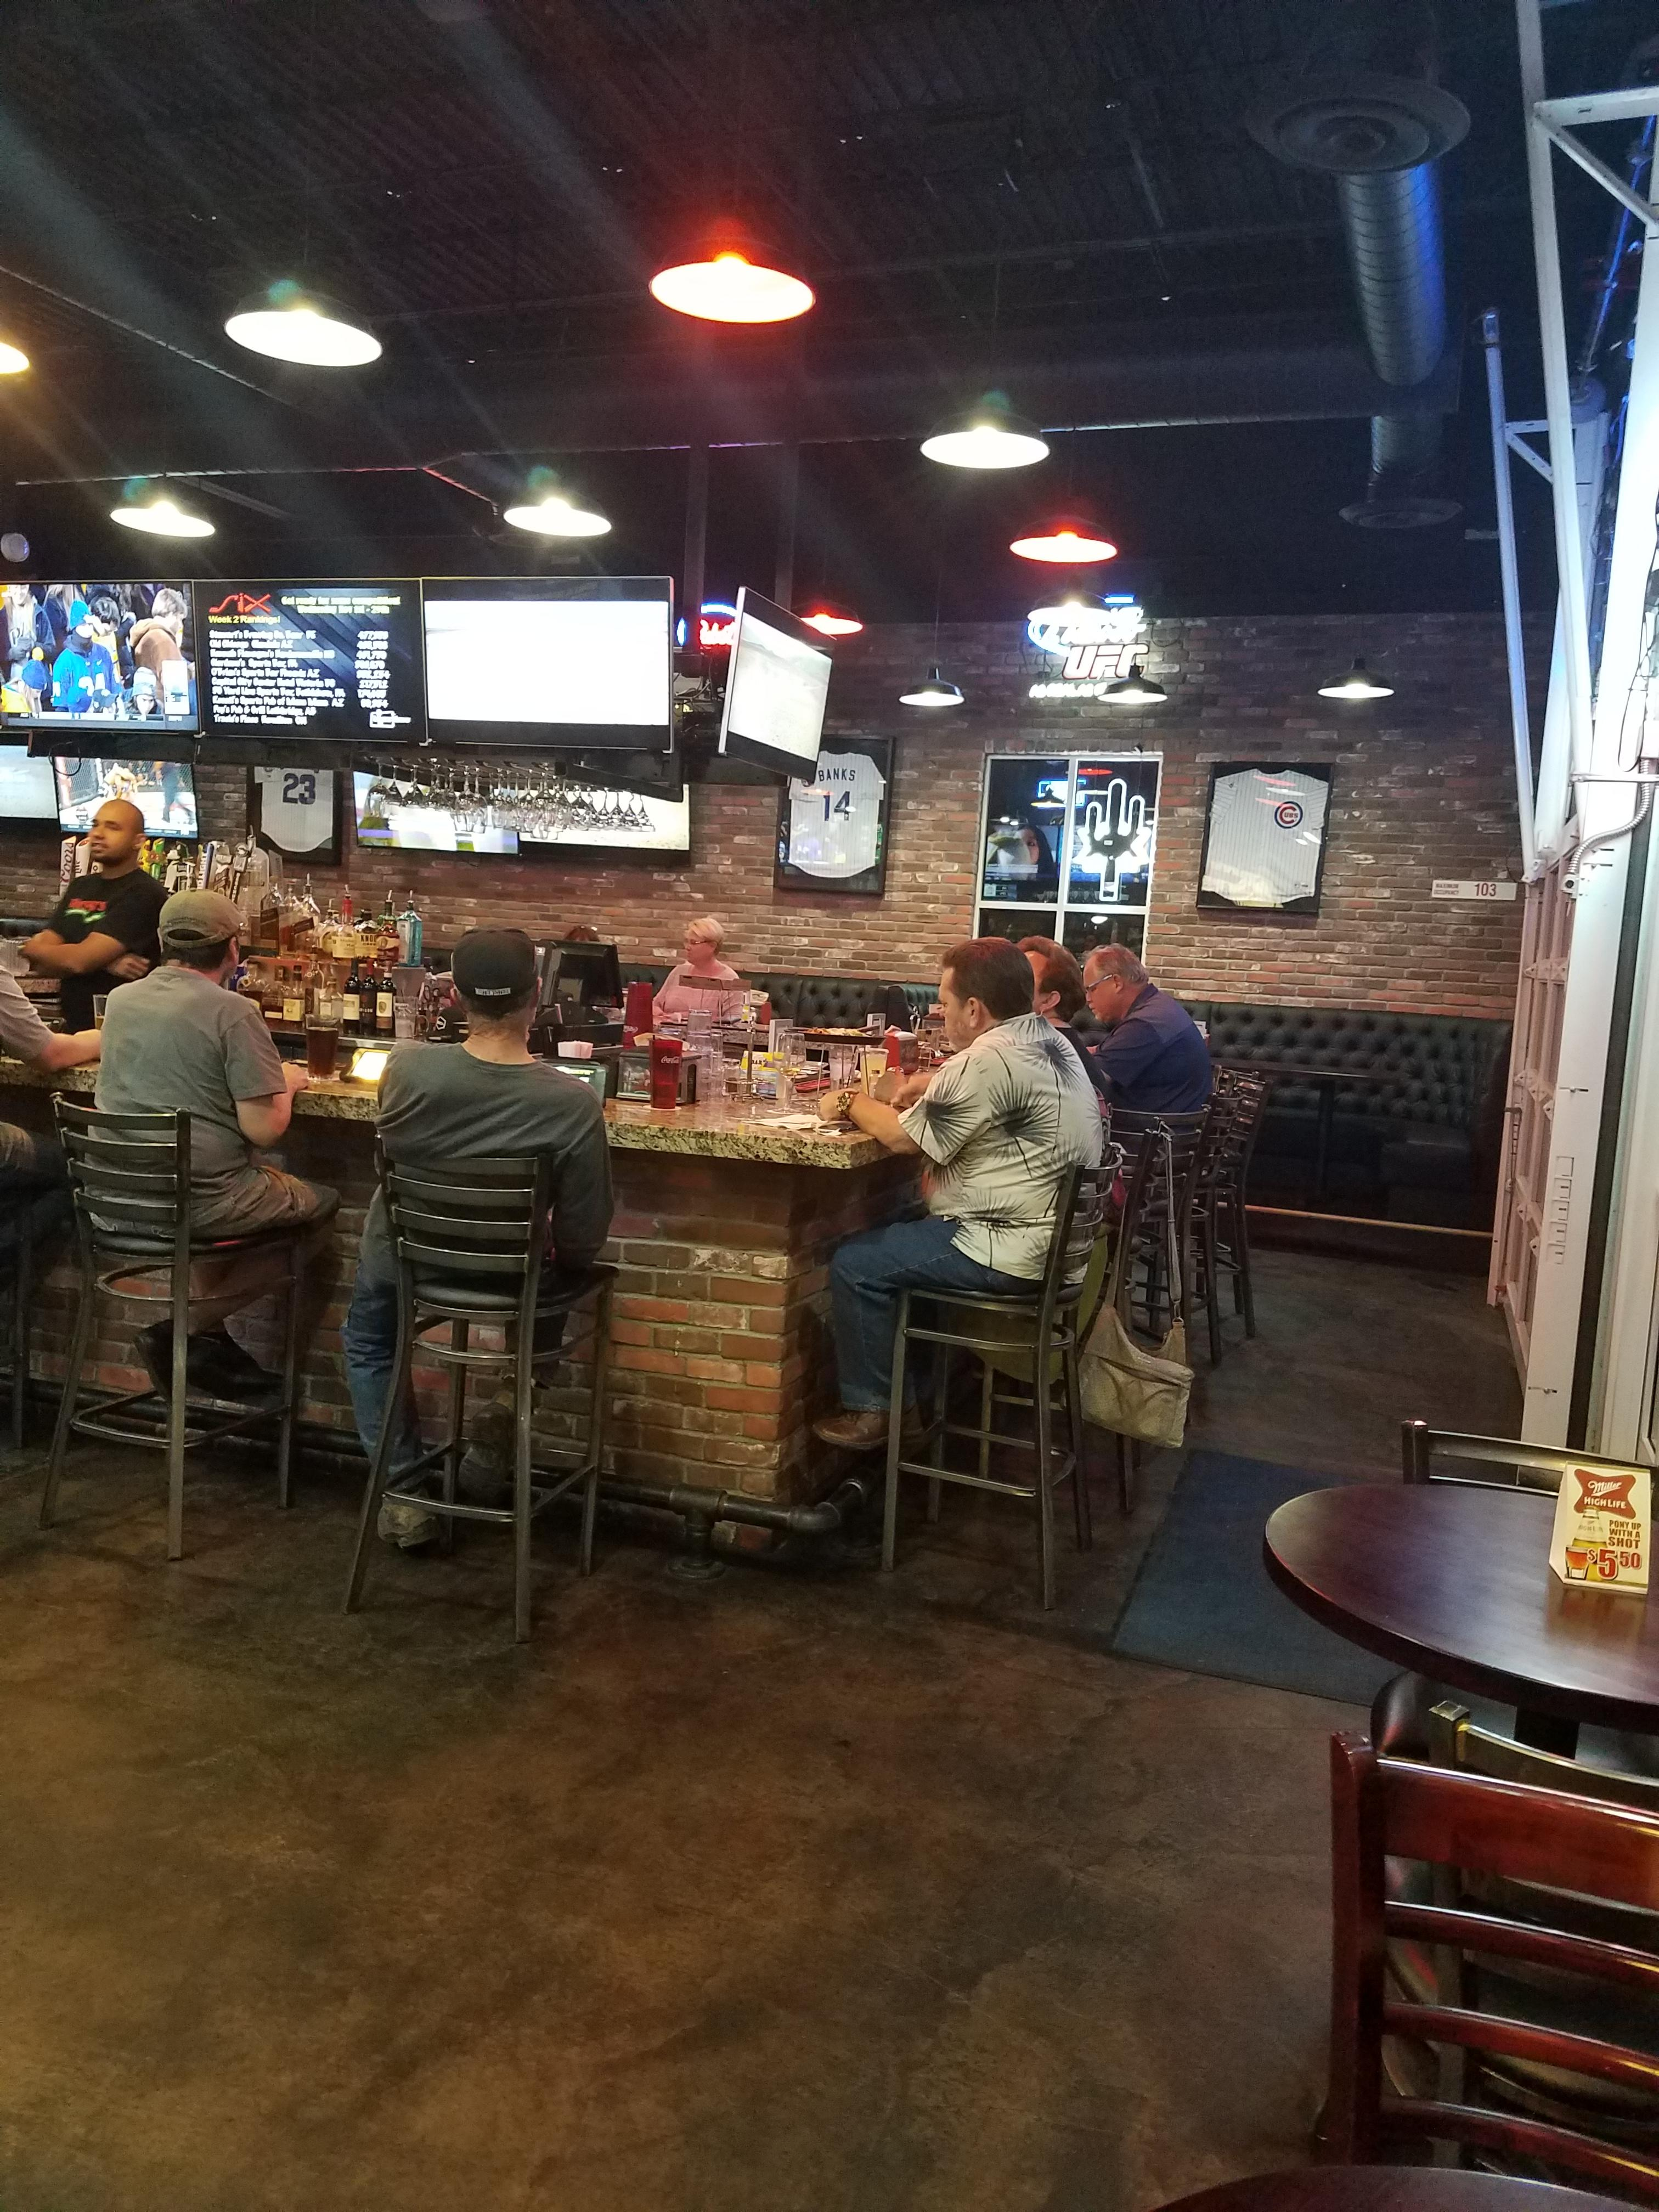 Rosatis pizza and sports bar image 1